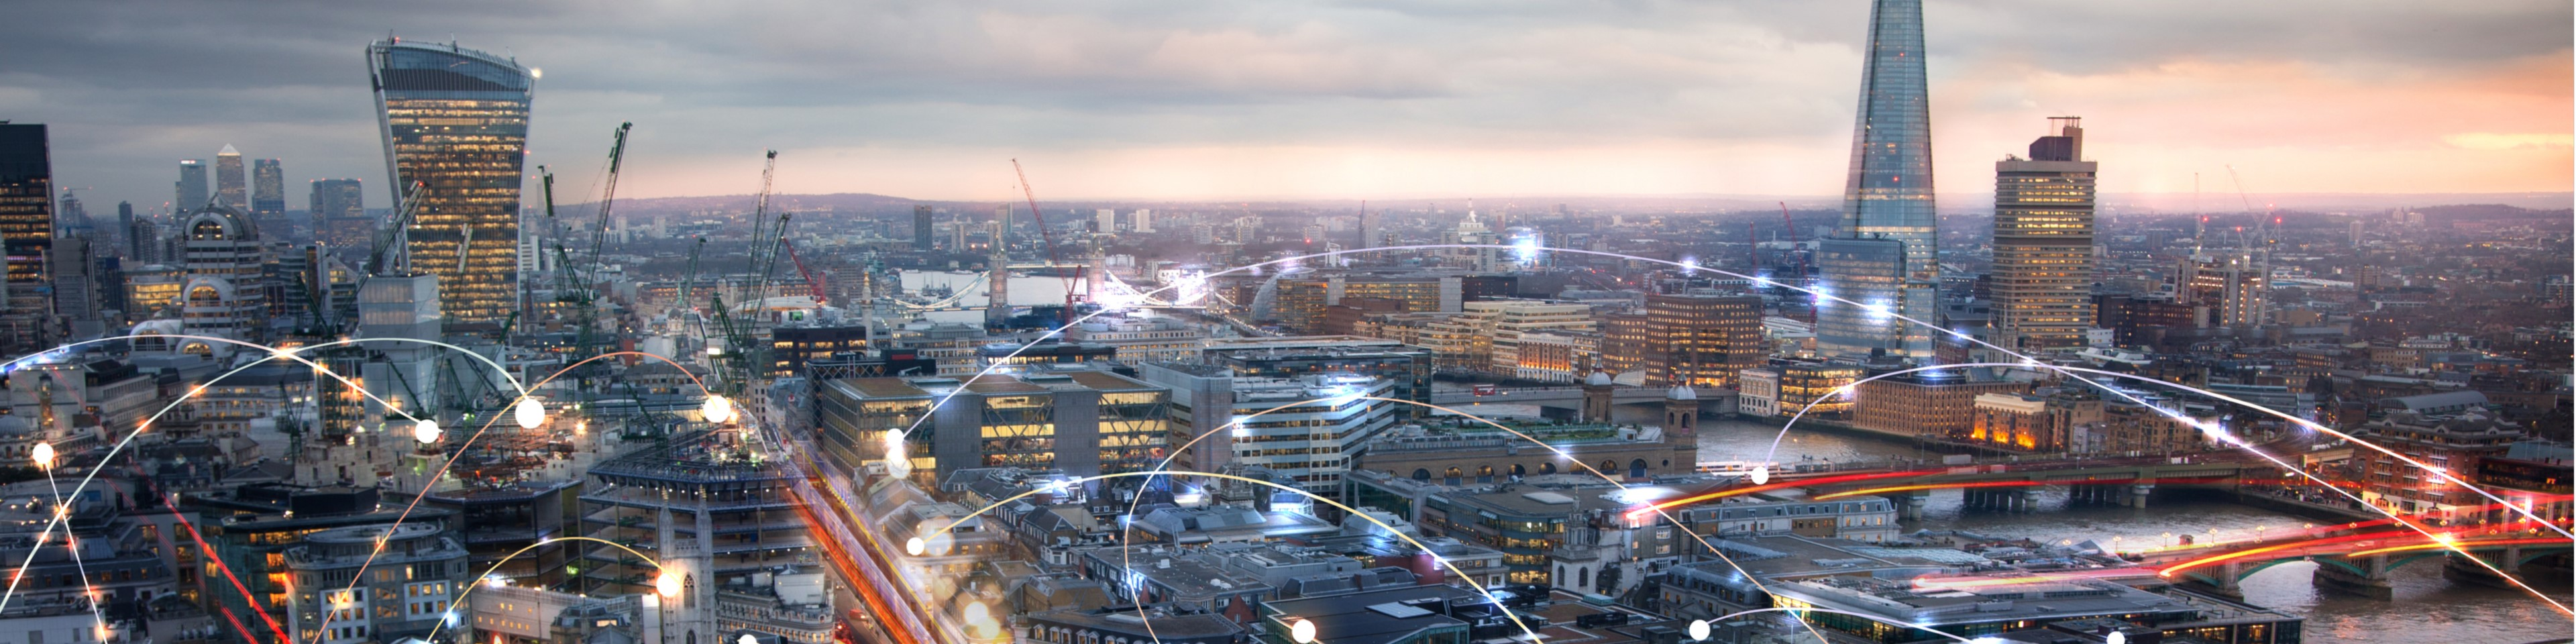 City of London sunset connections network